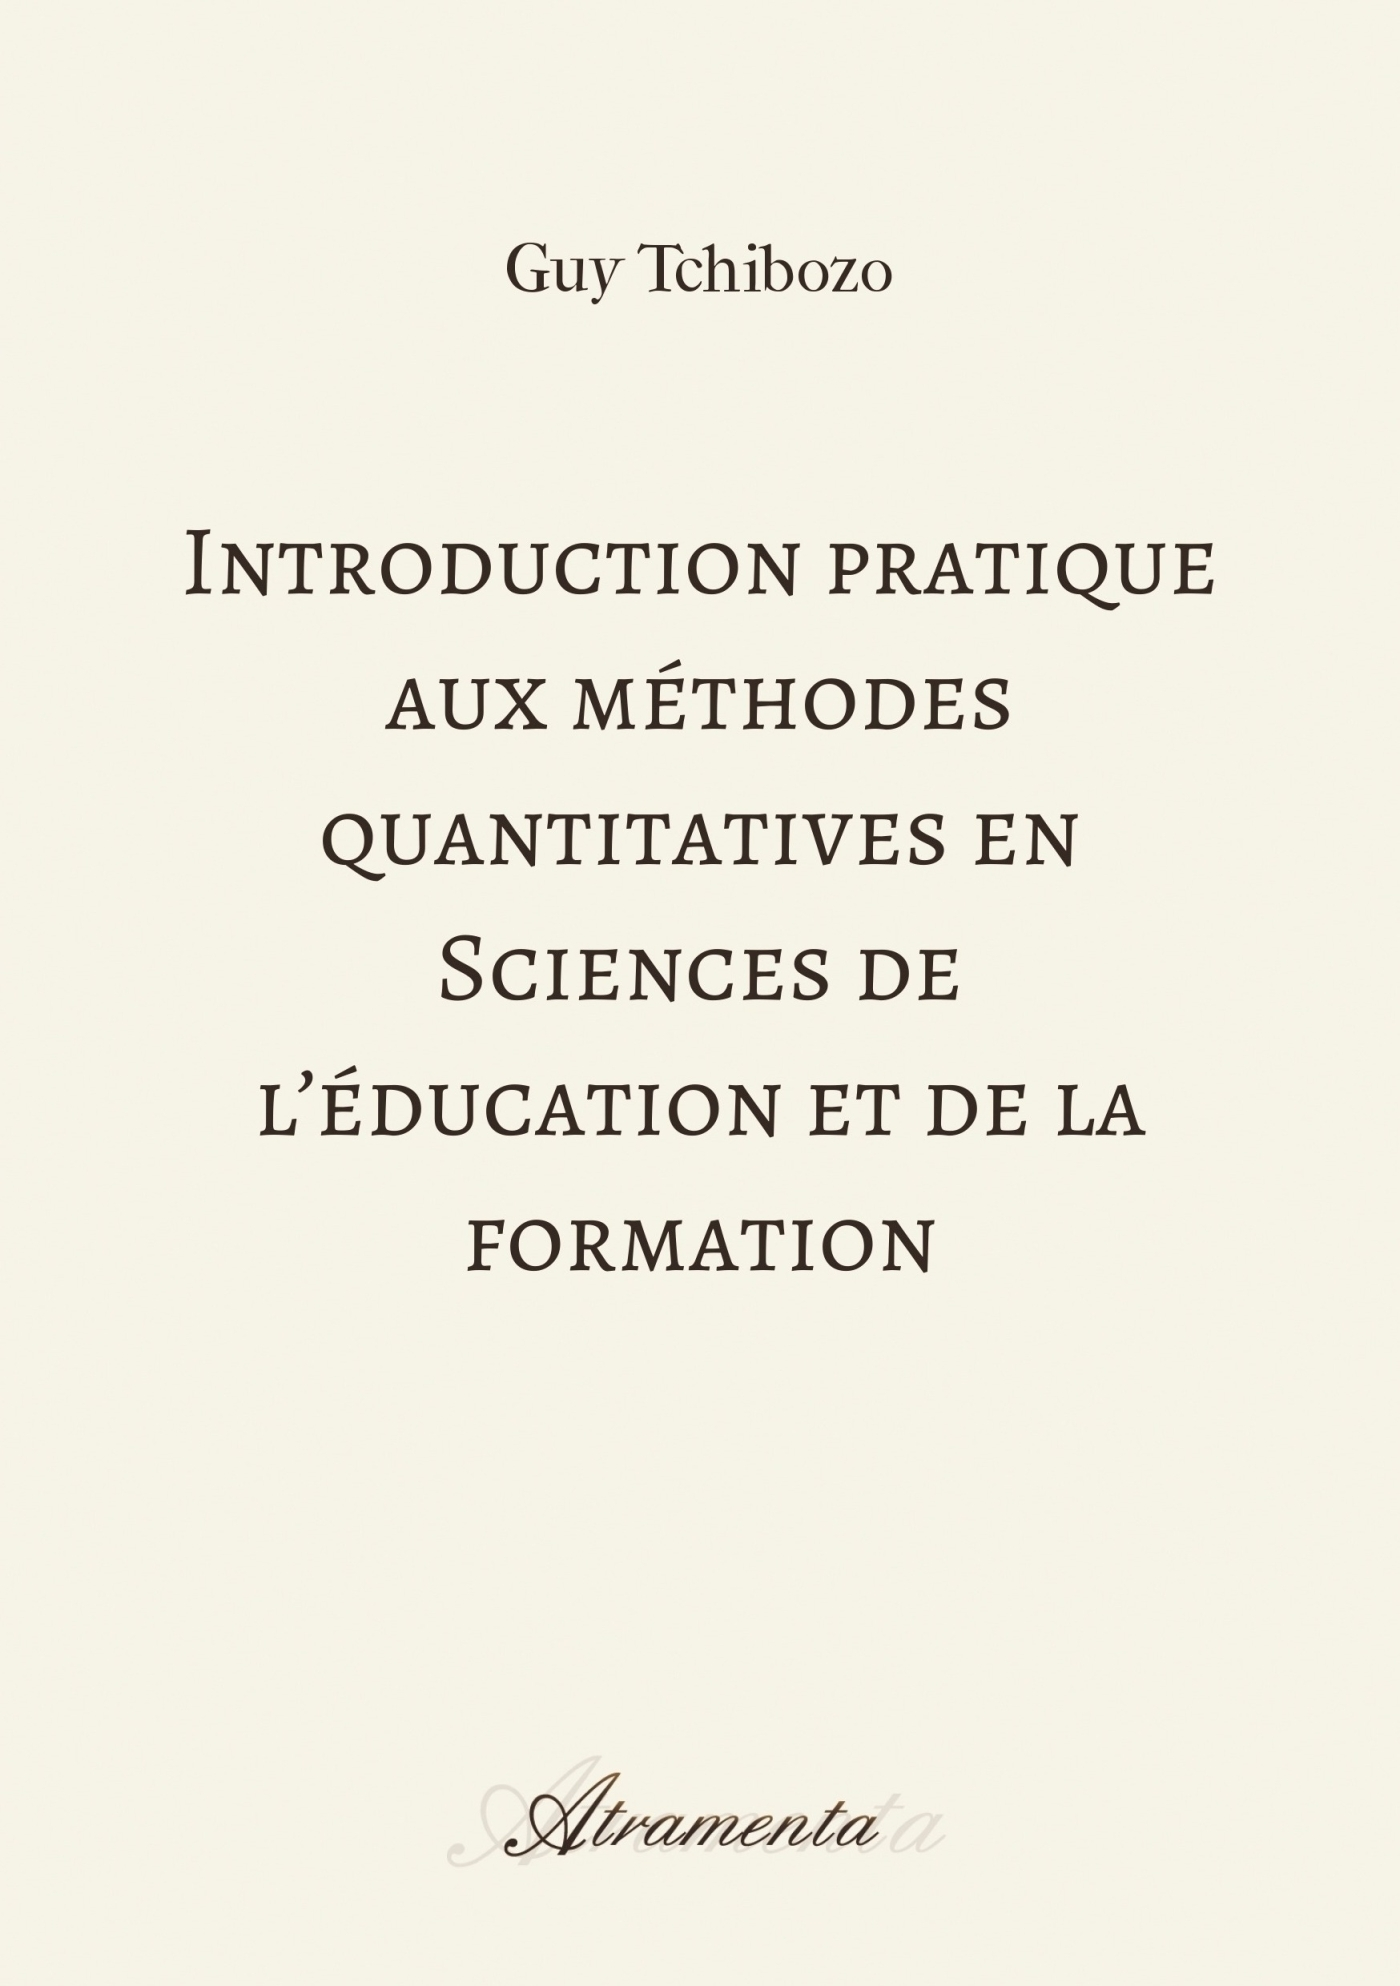 INTRODUCTION PRATIQUE AUX METHODES QUANTITATIVES EN SCIENCES DE L'EDUCATION ET DE LA FORMATION